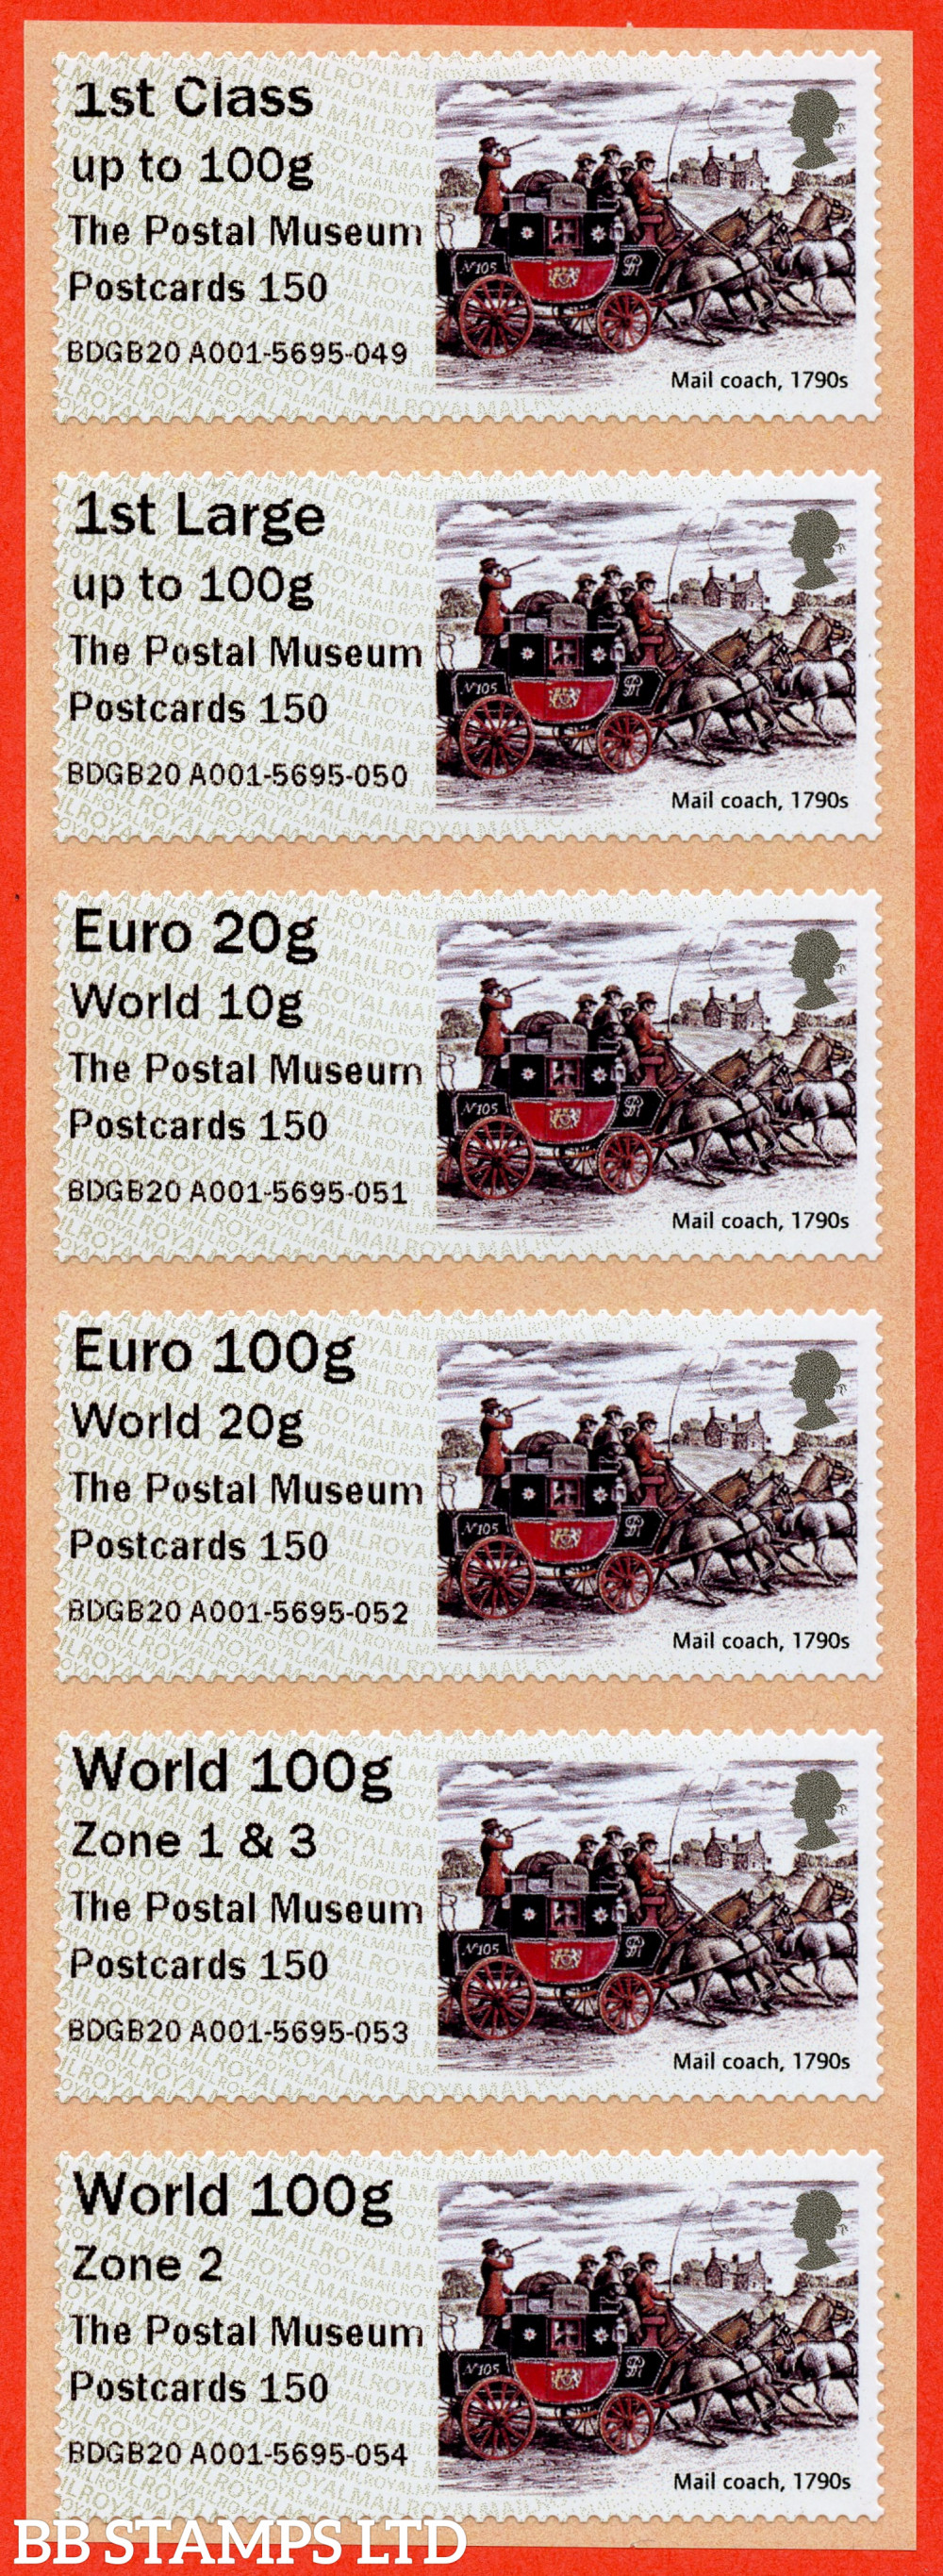 FS151/153, FSvar x3. Mail Coach (2020): The Postal Museum Postcards 150, set of 6 with new overseas stamps: 1st/1stL/Euro 20g World 10g, and 3 new values: Euro 100g World 20g, World 100g Zone 1 & 3, and World Zone 2 (TIIIA, digitally printed): MA16 year code. (BK31 P3)